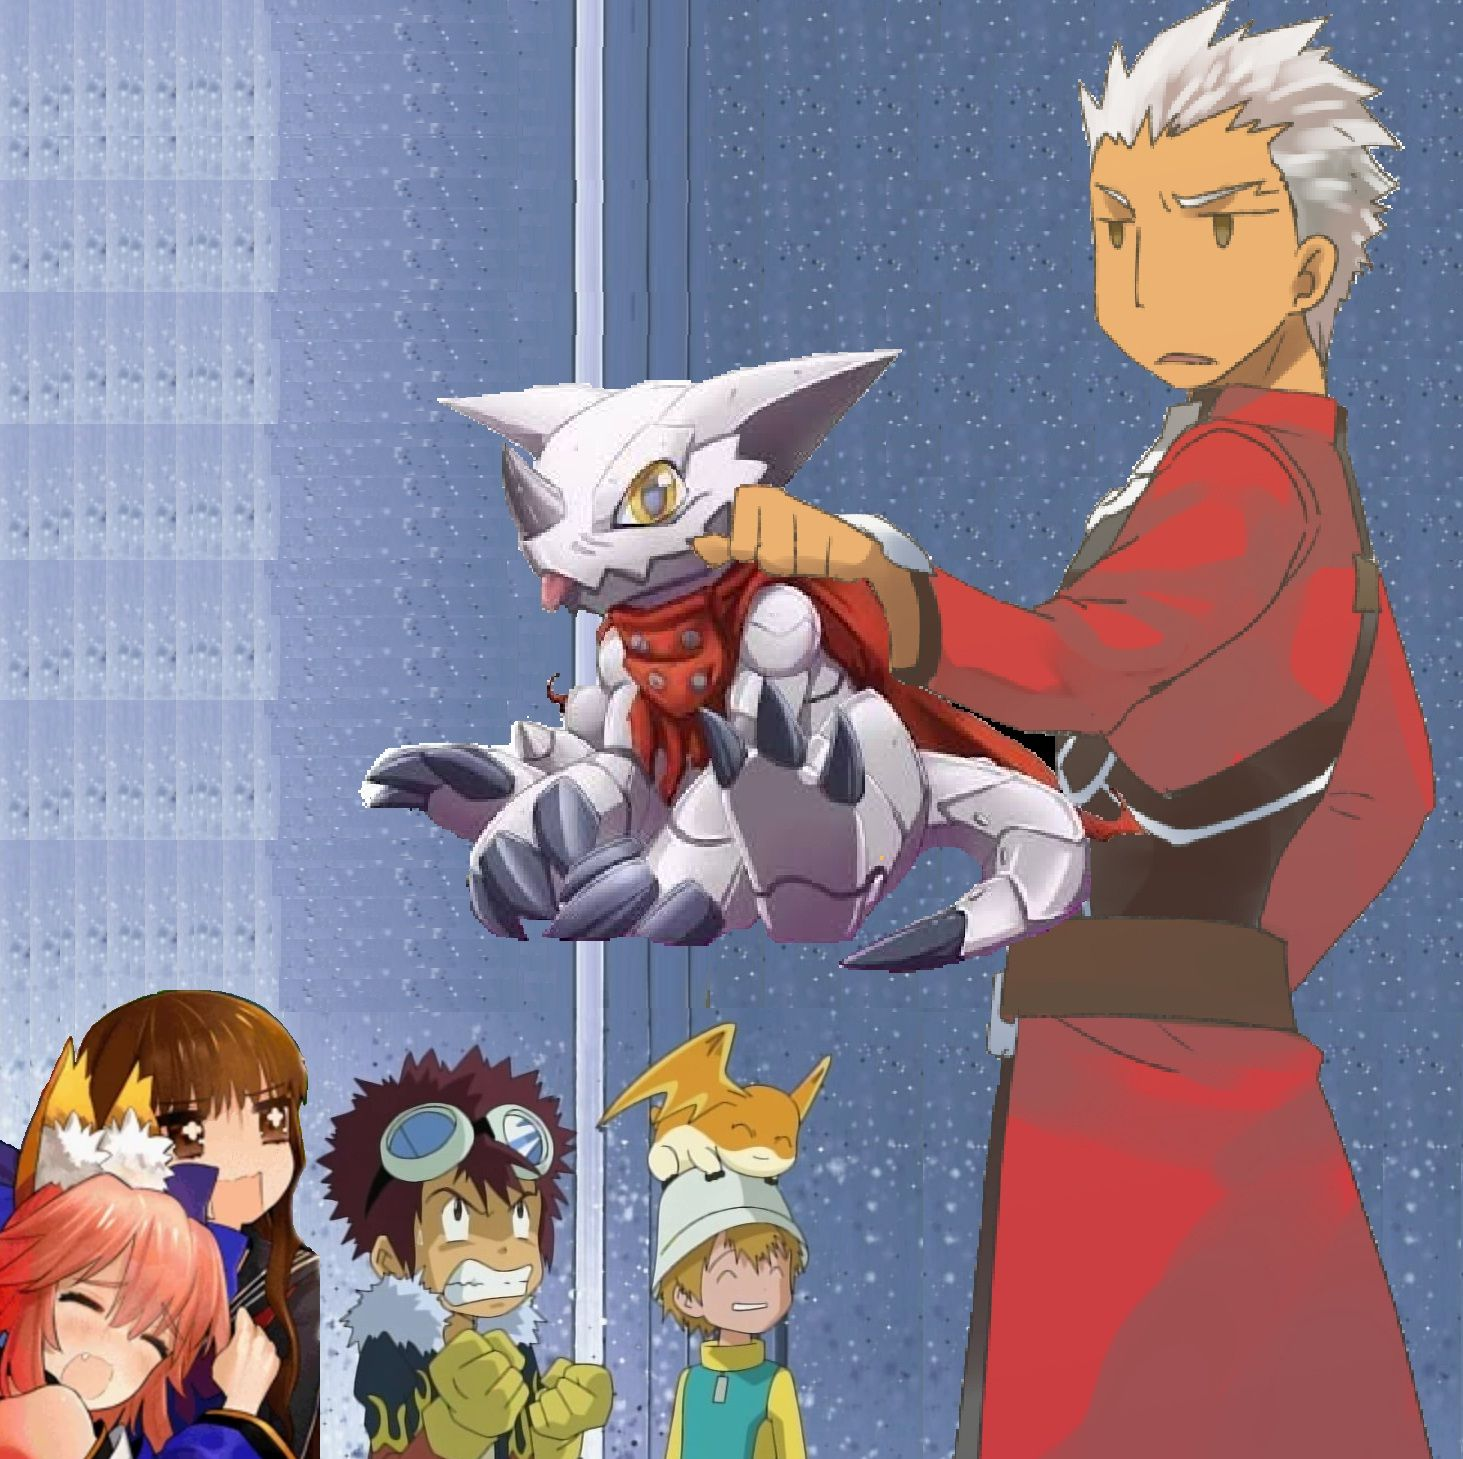 Here Come A New Ally Fate Stay Night Crossover Anime Crossover Digimon After the events of fate/stay night: fate stay night crossover